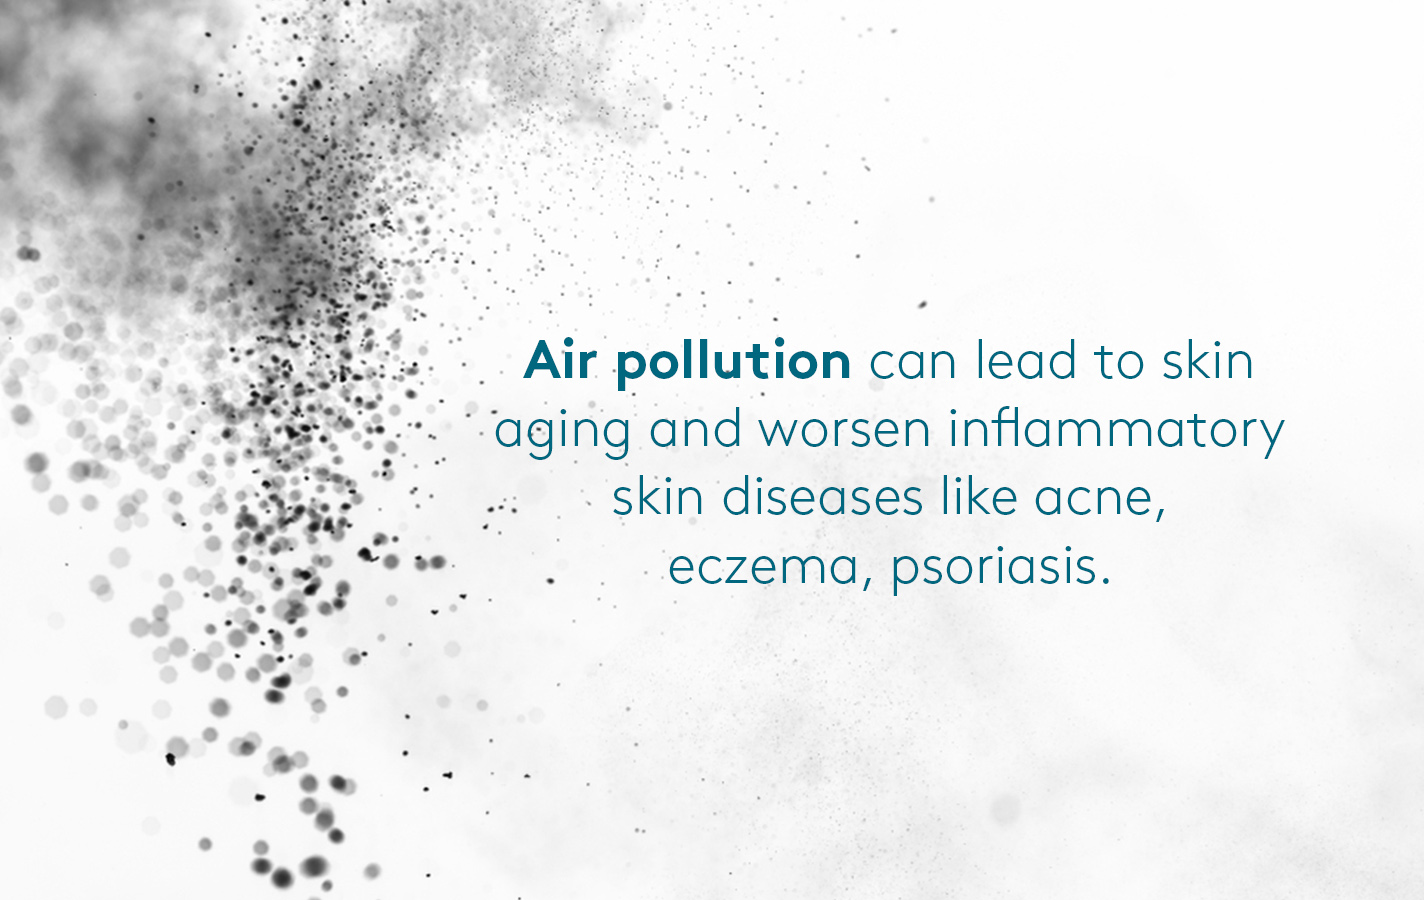 Need for anti pollution skin care for skin diseases